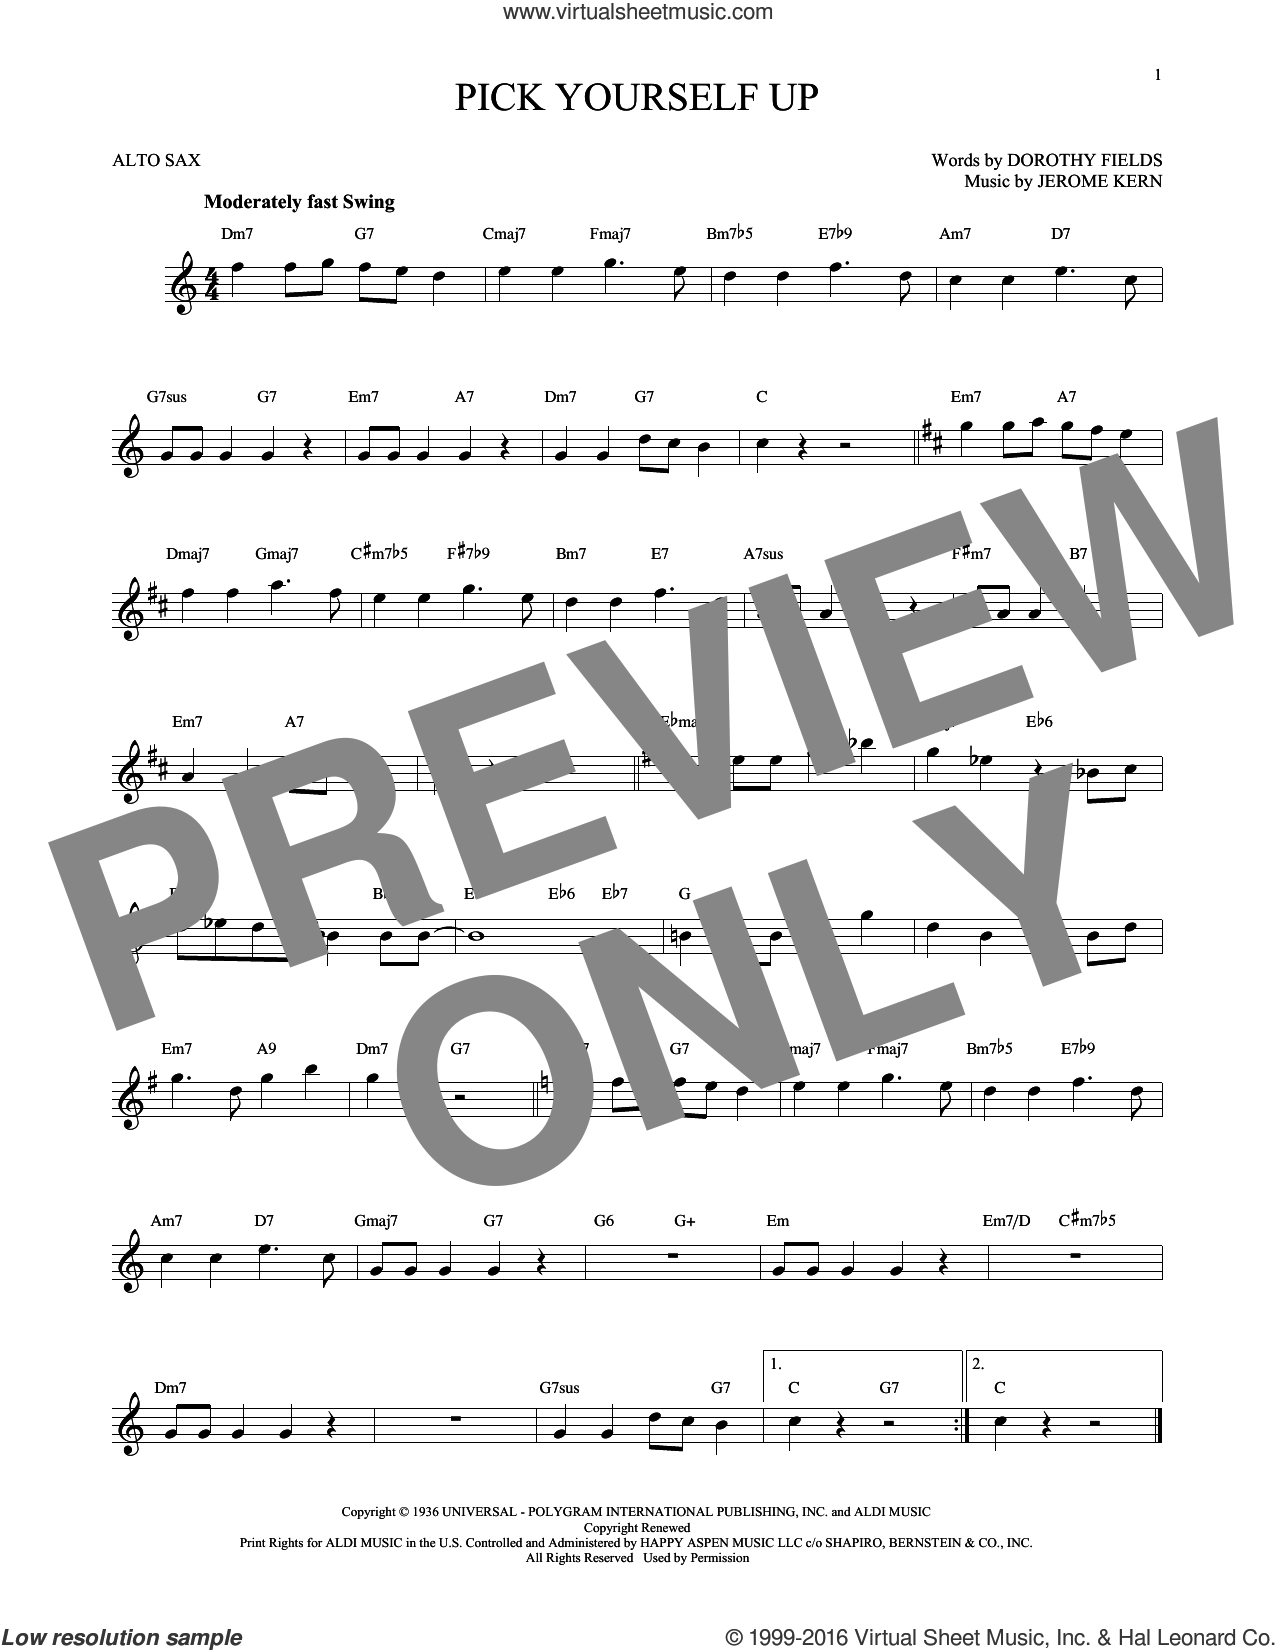 Pick Yourself Up sheet music for alto saxophone solo by Dorothy Fields